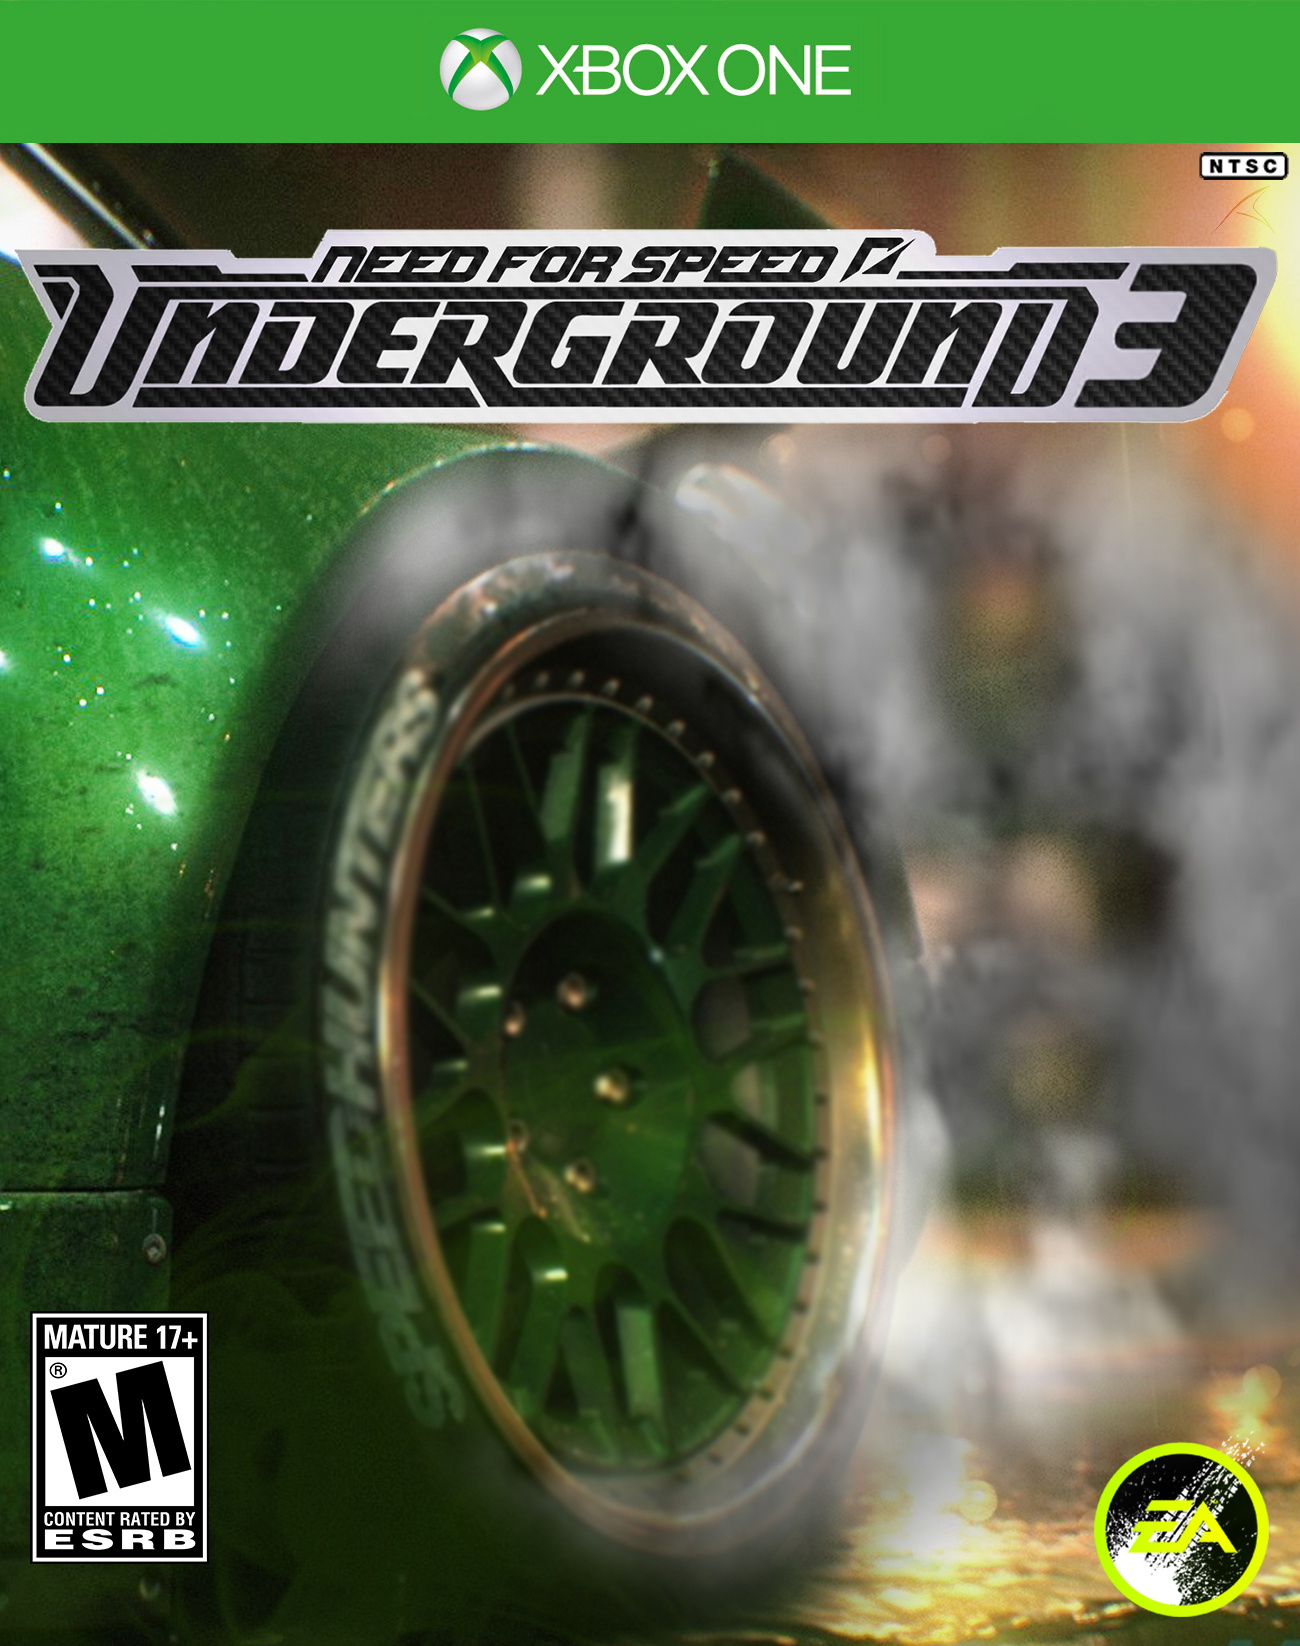 Need For Speed Underground 3 Custom Cover By Carricudizilla On Deviantart